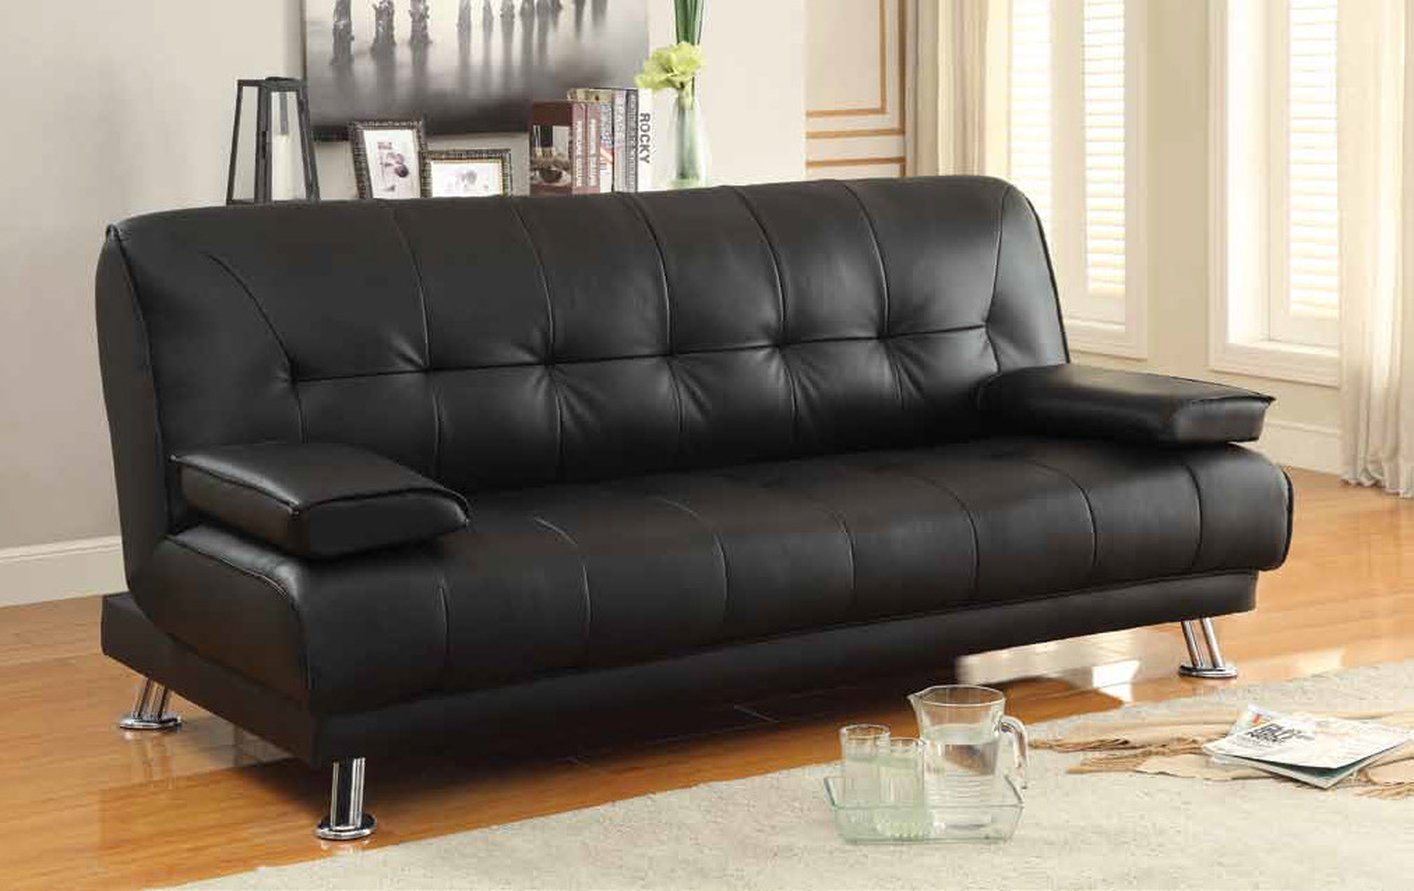 Coaster 300205 Black Leather Sofa Bed Steal A Sofa Furniture Outlet Los Angeles Ca